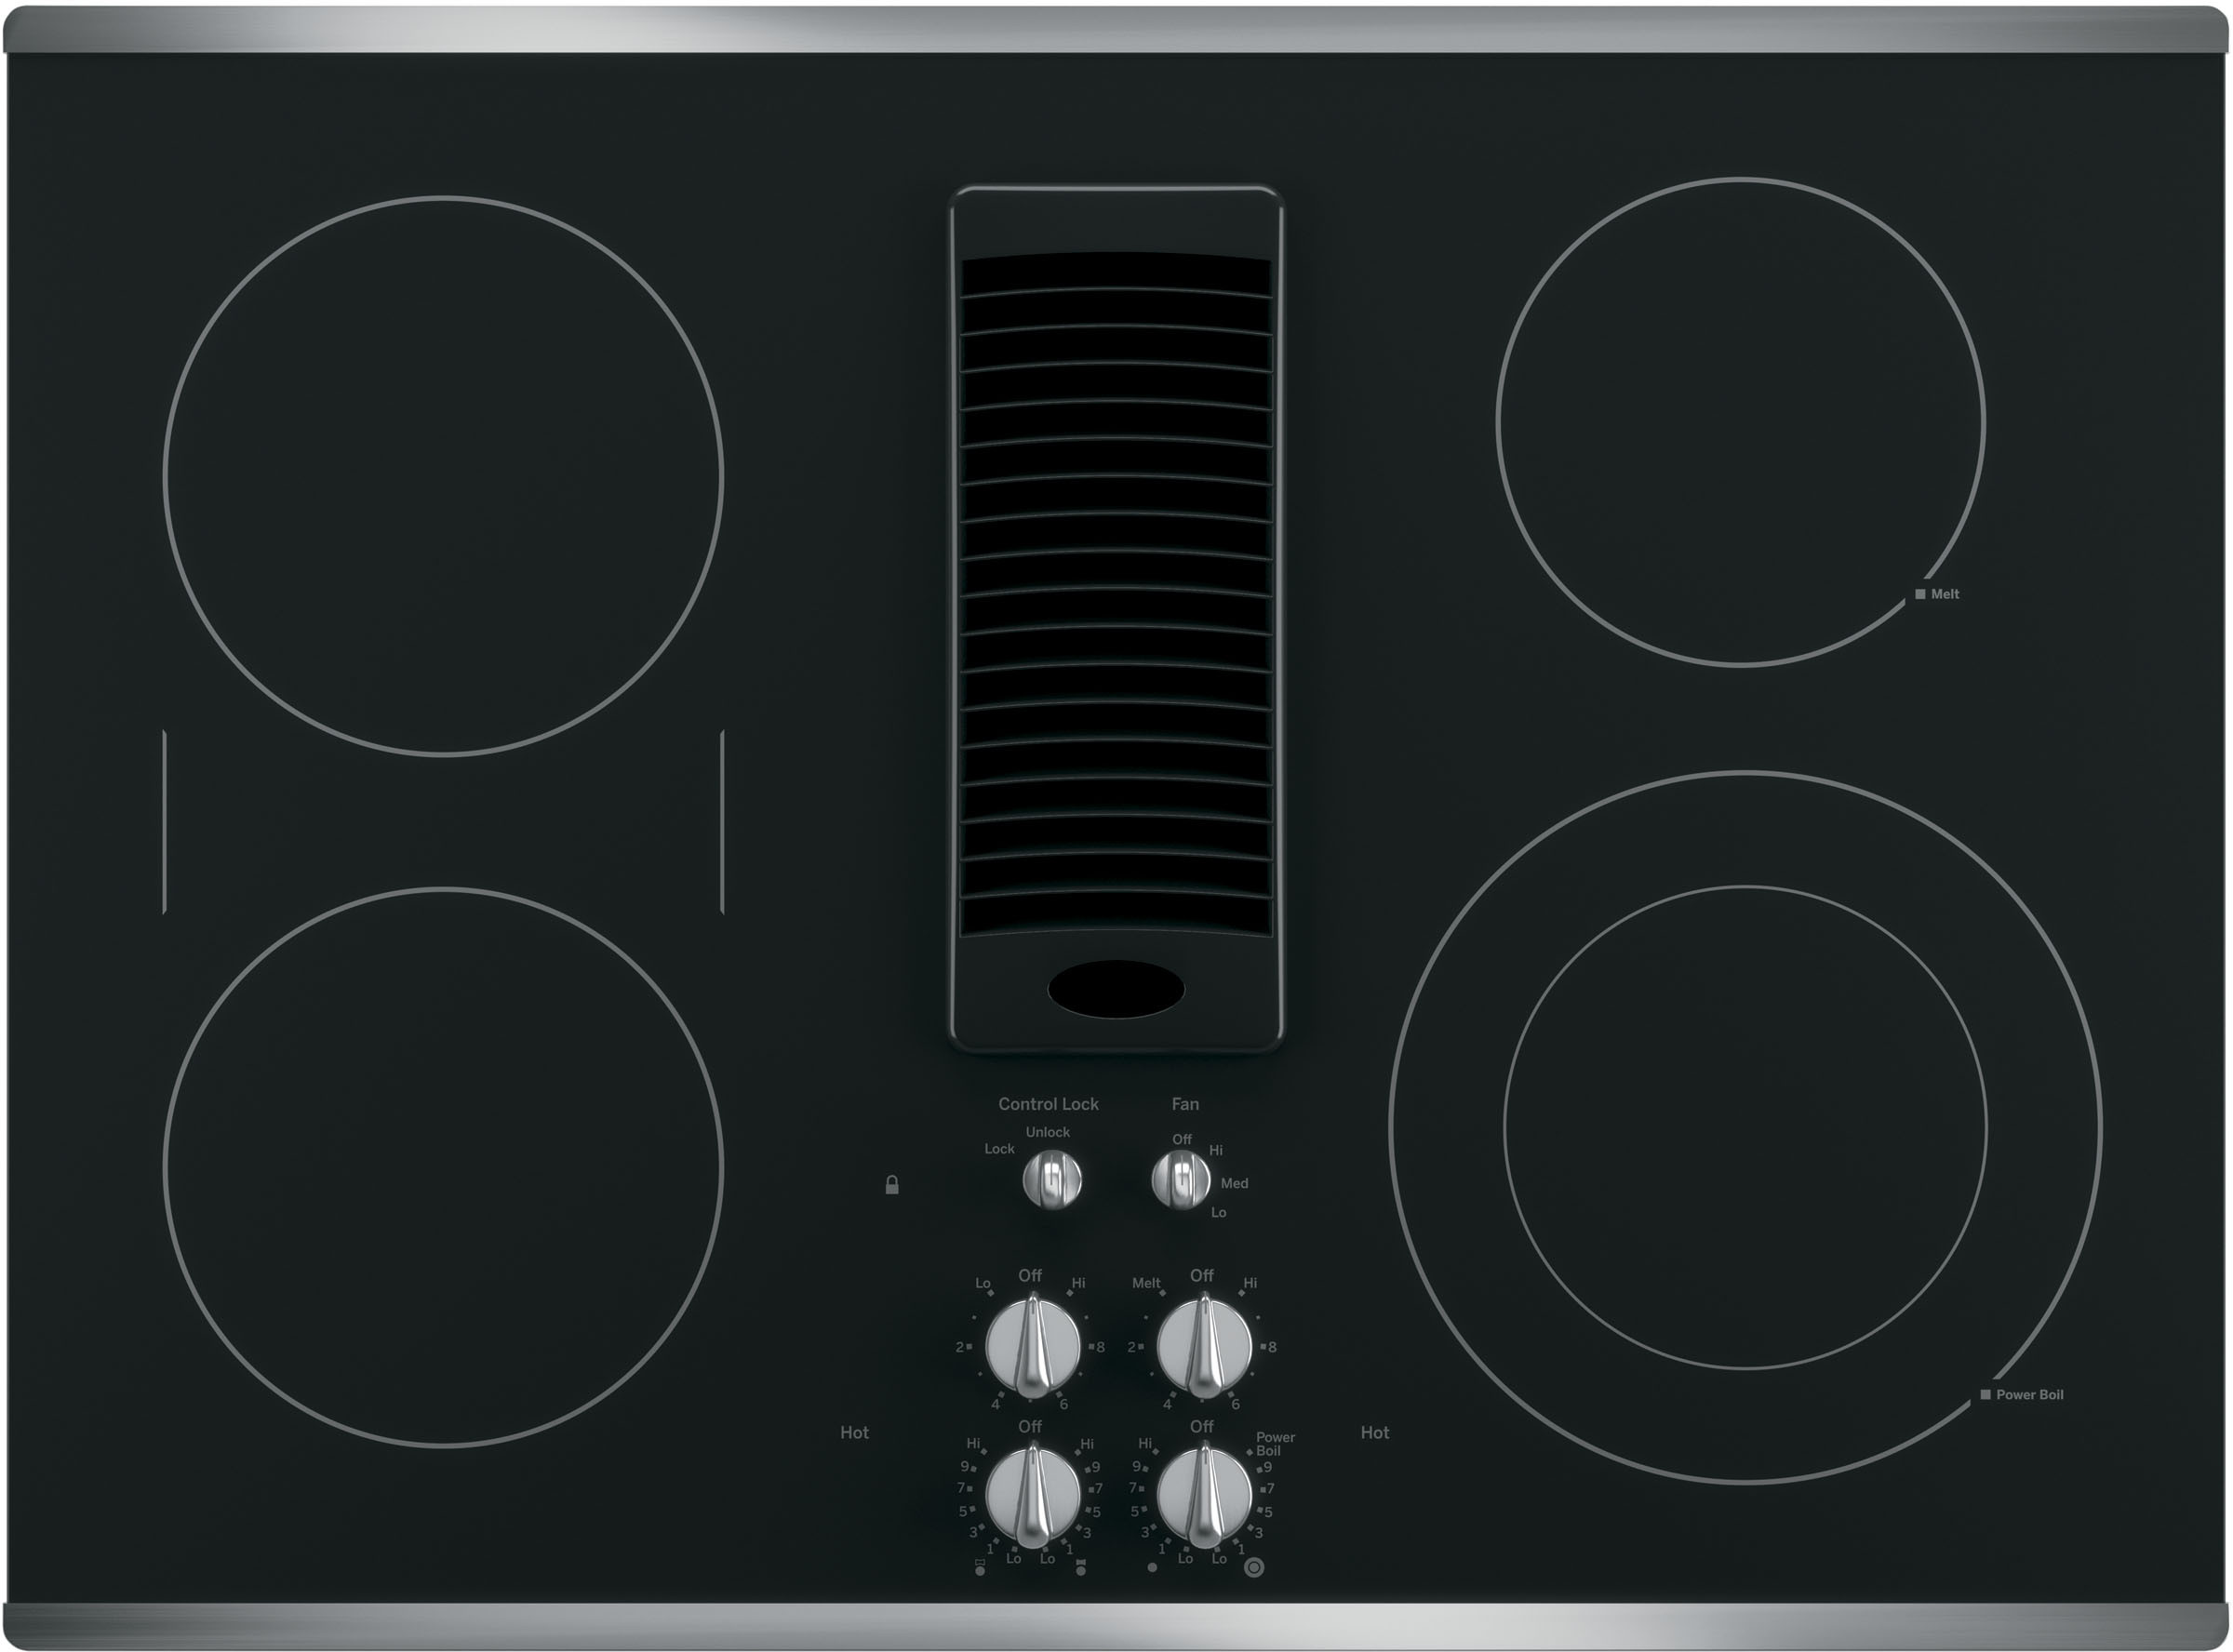 GE PP9830DJBB 30 Inch Smoothtop Electric Cooktop with 4 Burners 9//6 Inch Power Boil Bridge Element and 3-Speed Downdraft Exhaust System